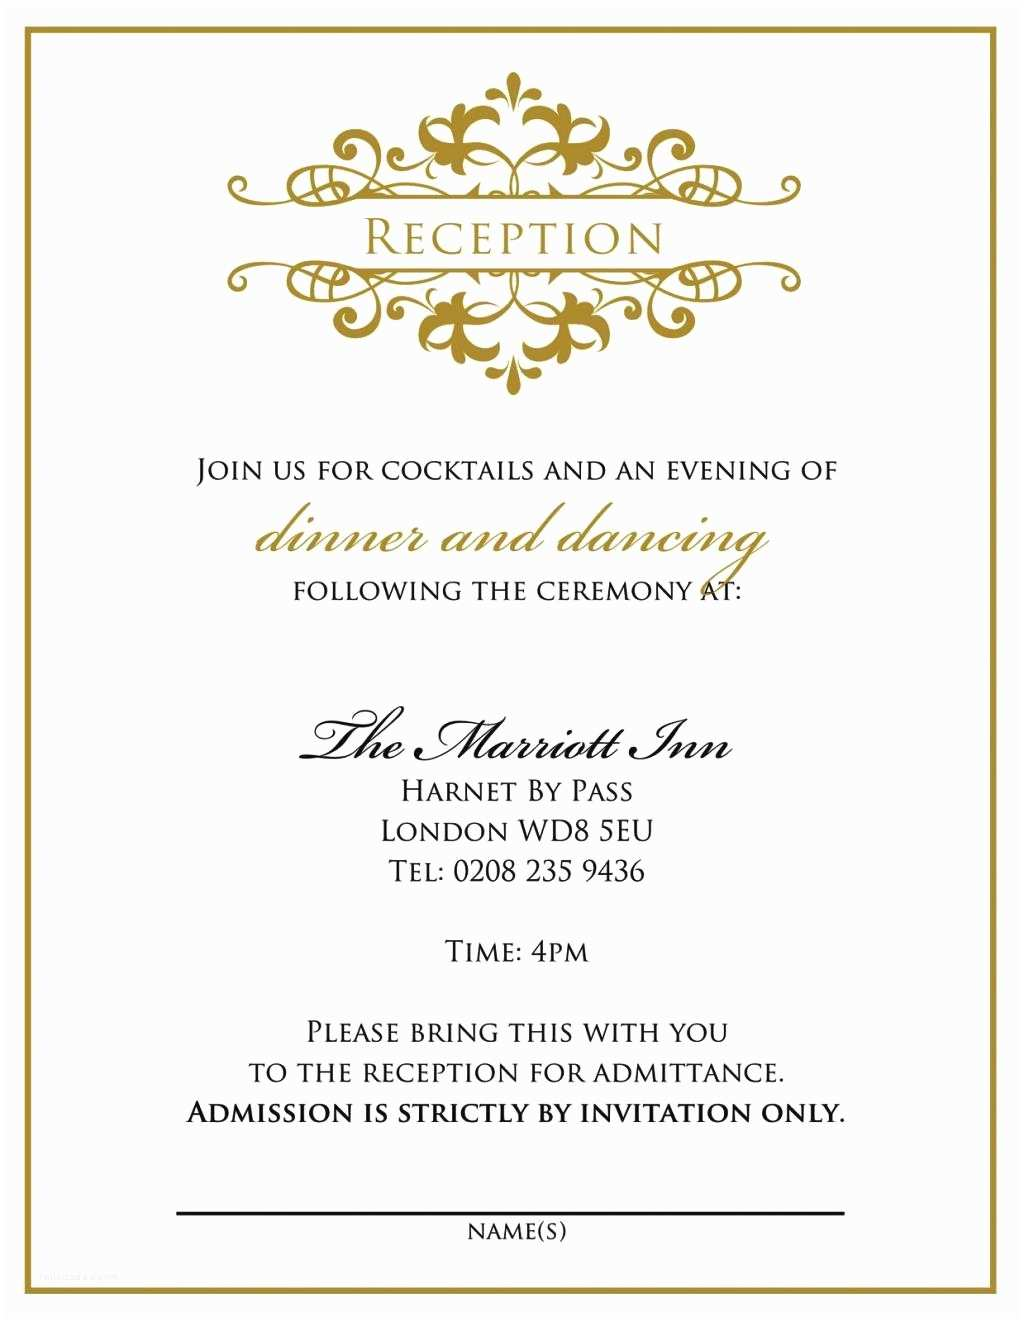 Personal Wedding Invitation Personal Wedding Invitation Cards